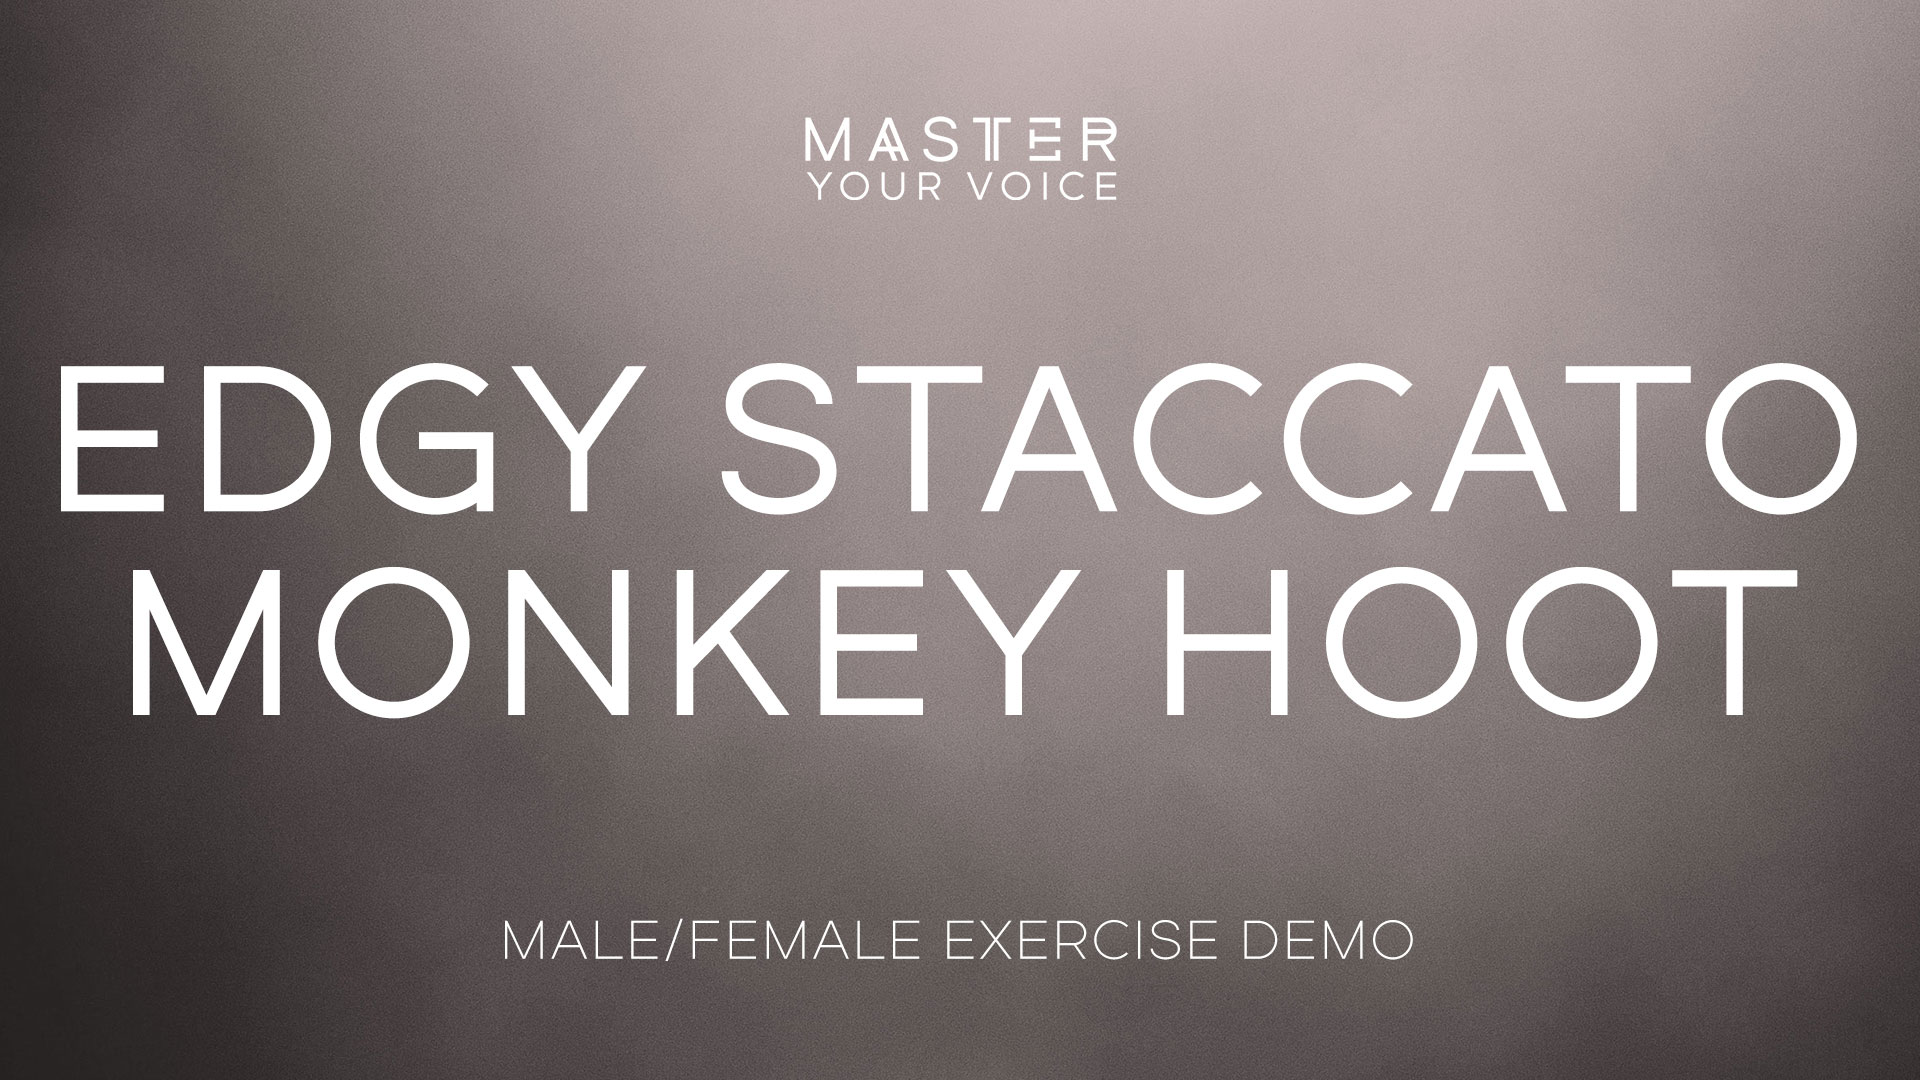 Edgy Staccato Monkey Hoot Exercise Demo